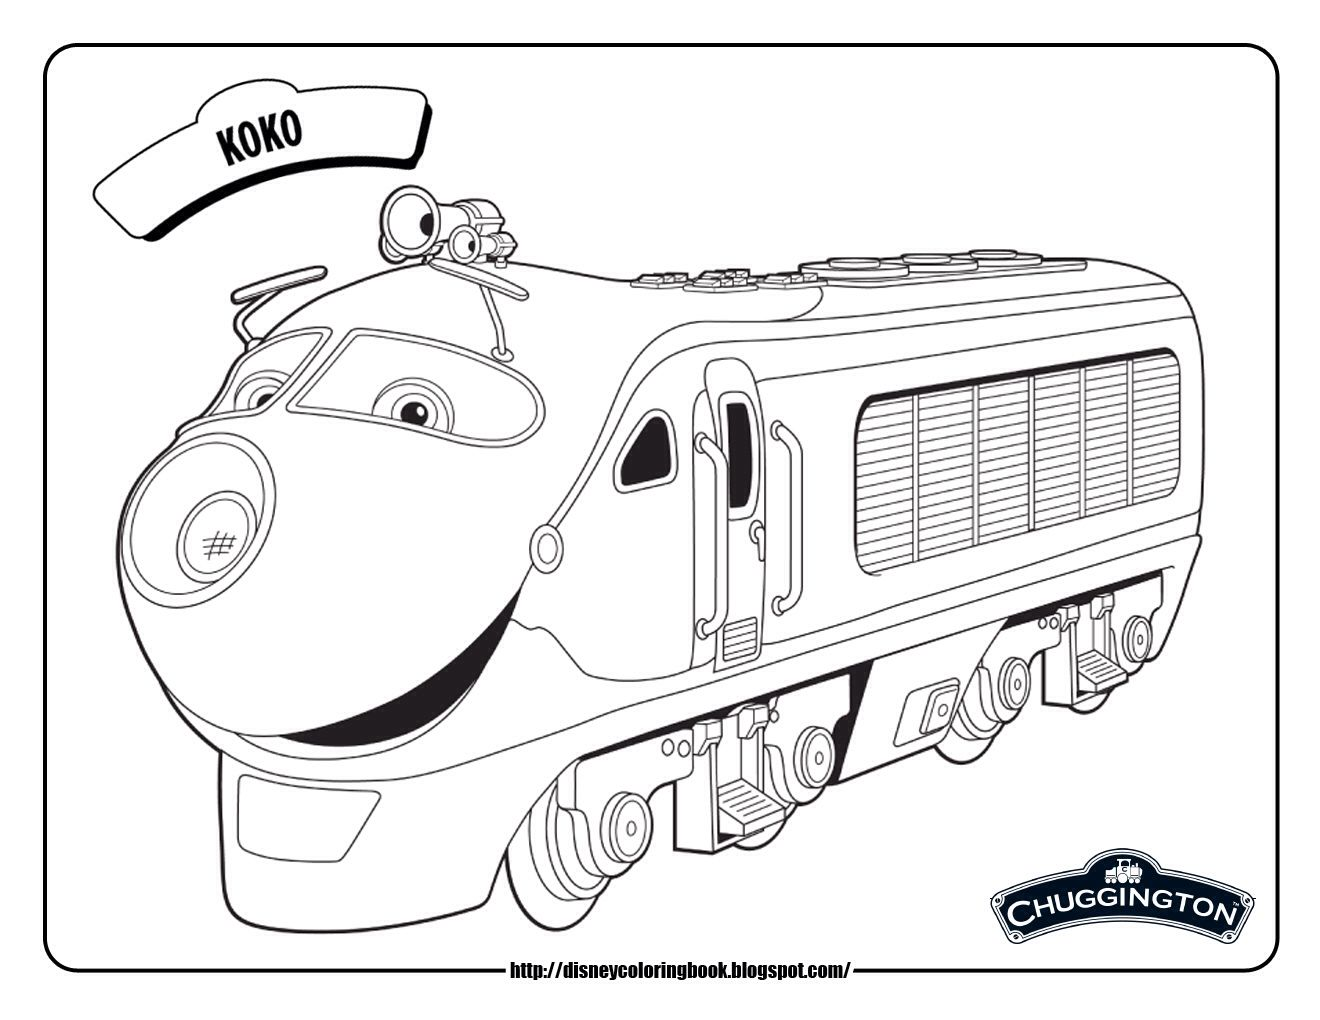 Pin de Angie Smith en Makayla\'s chuggington birthday | Pinterest